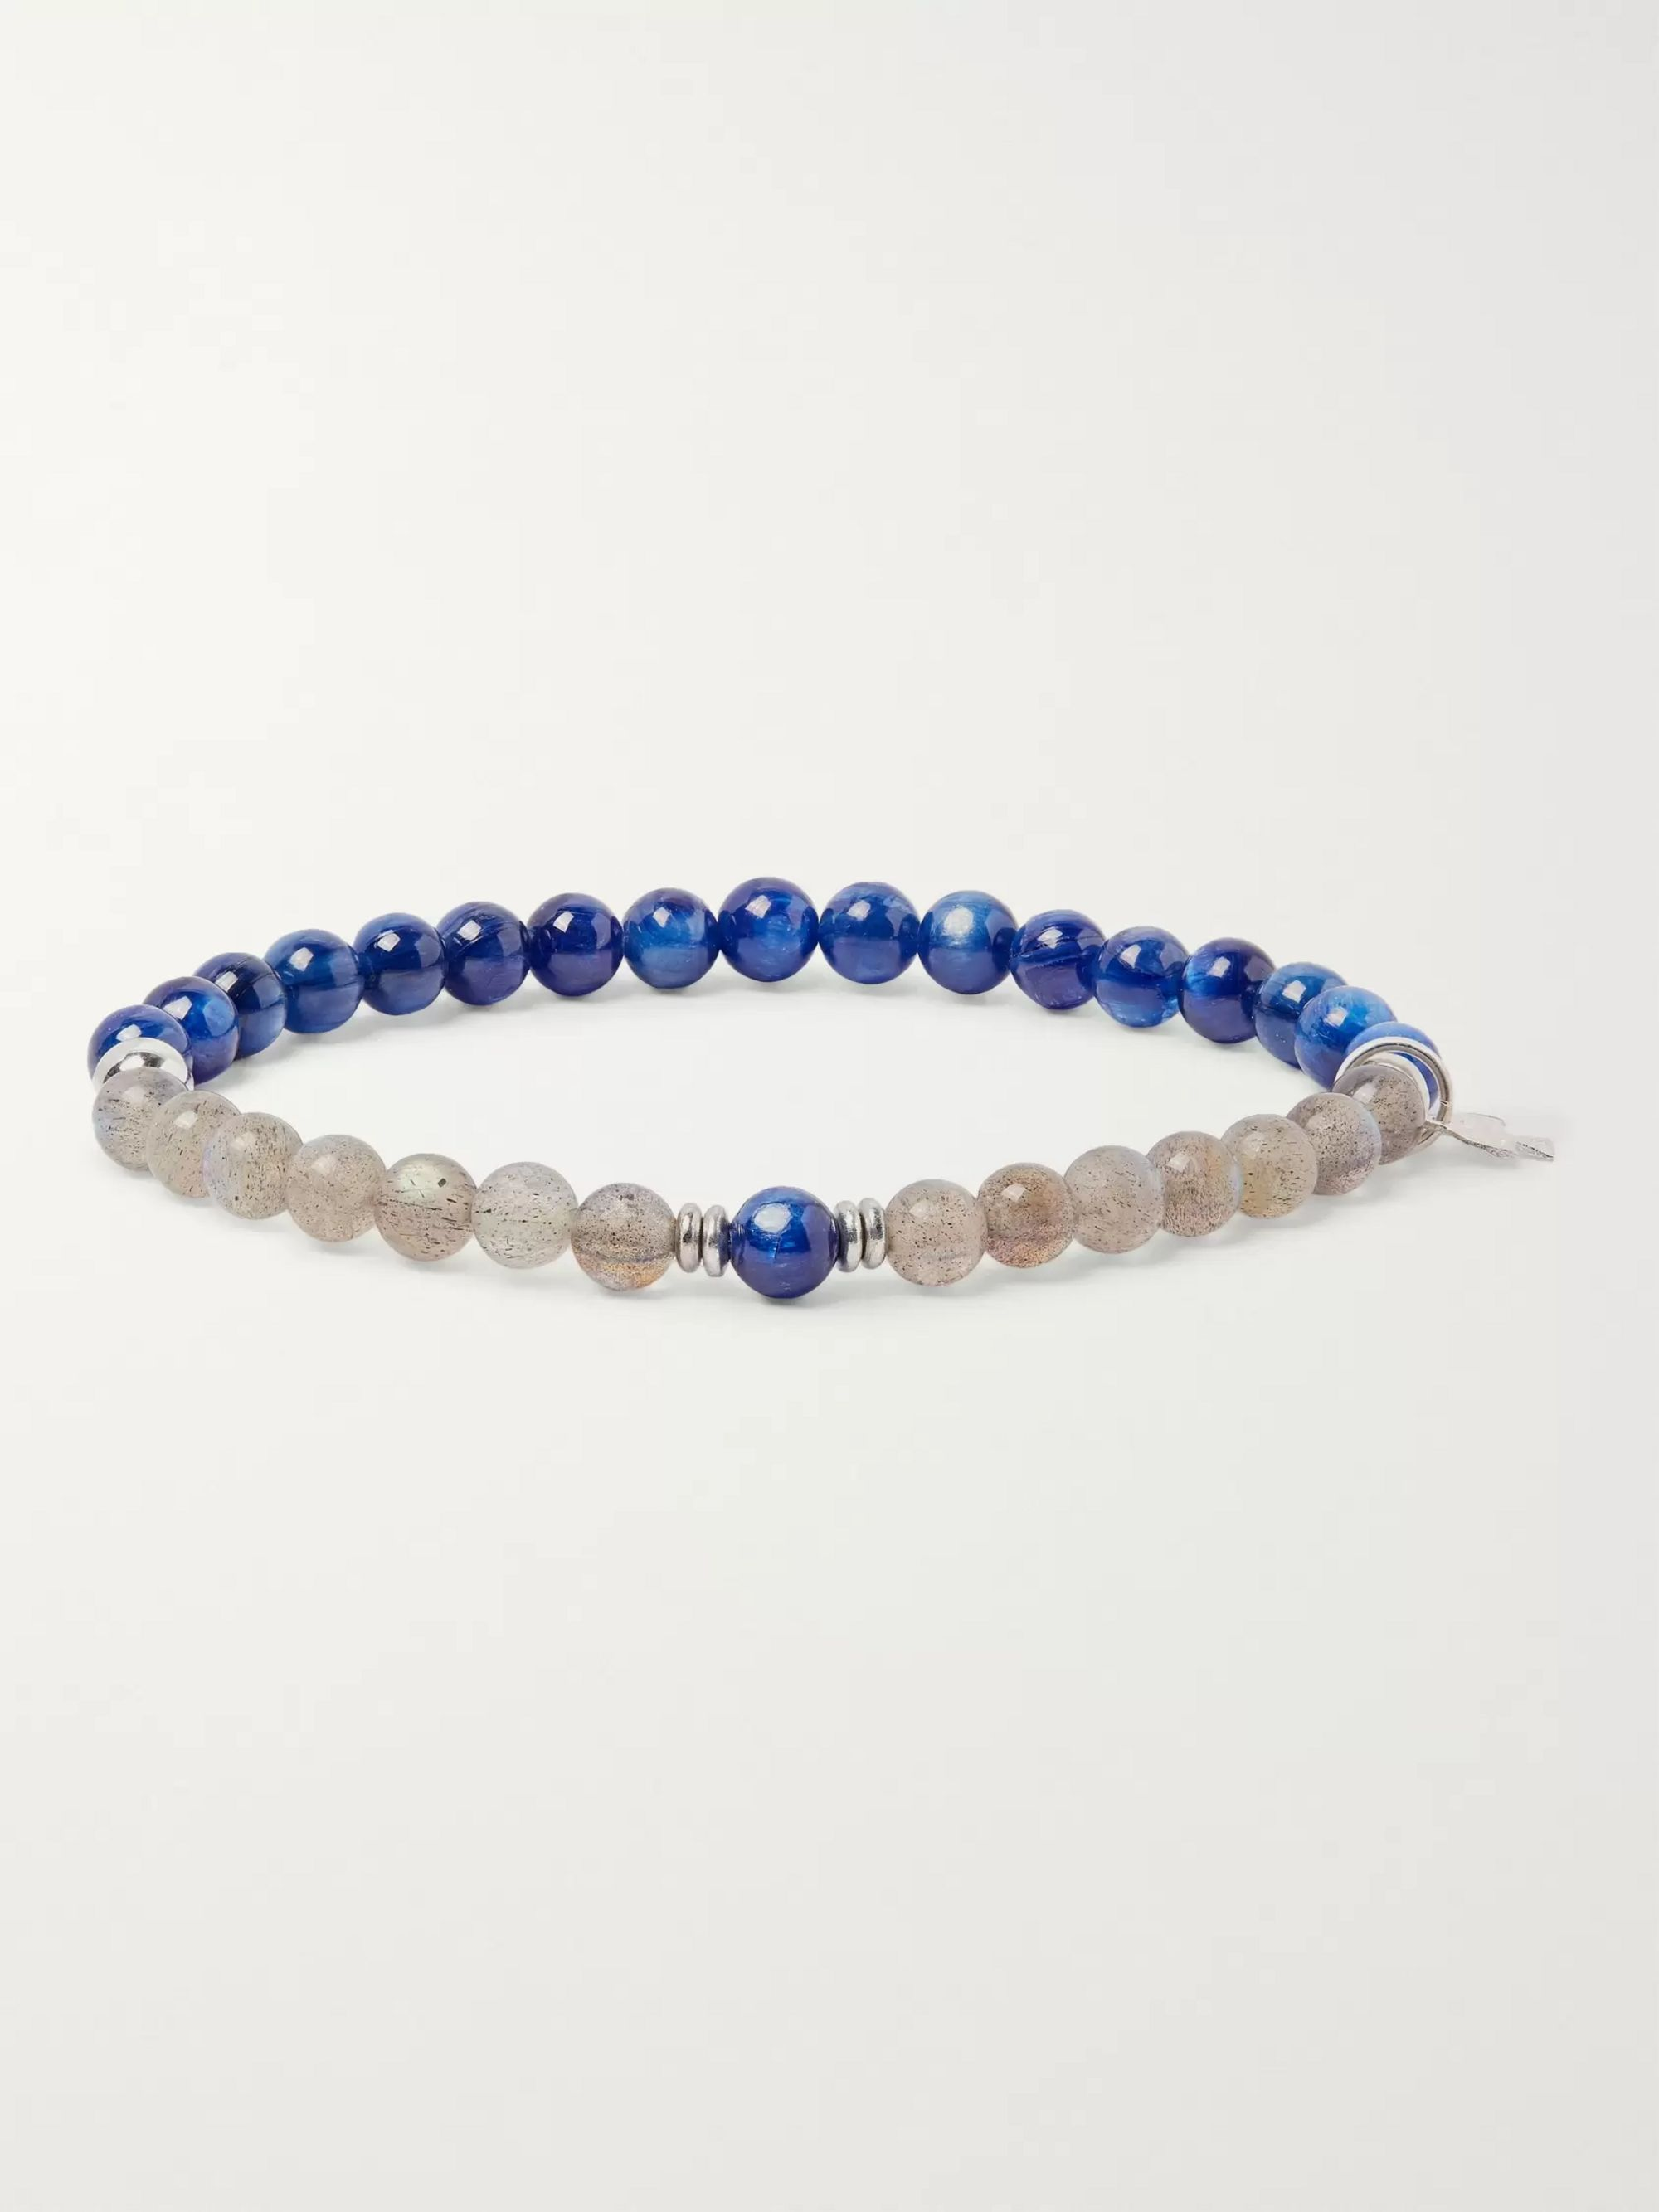 Peyote Bird Kyanite, Labradorite and Sterling Silver Bracelet